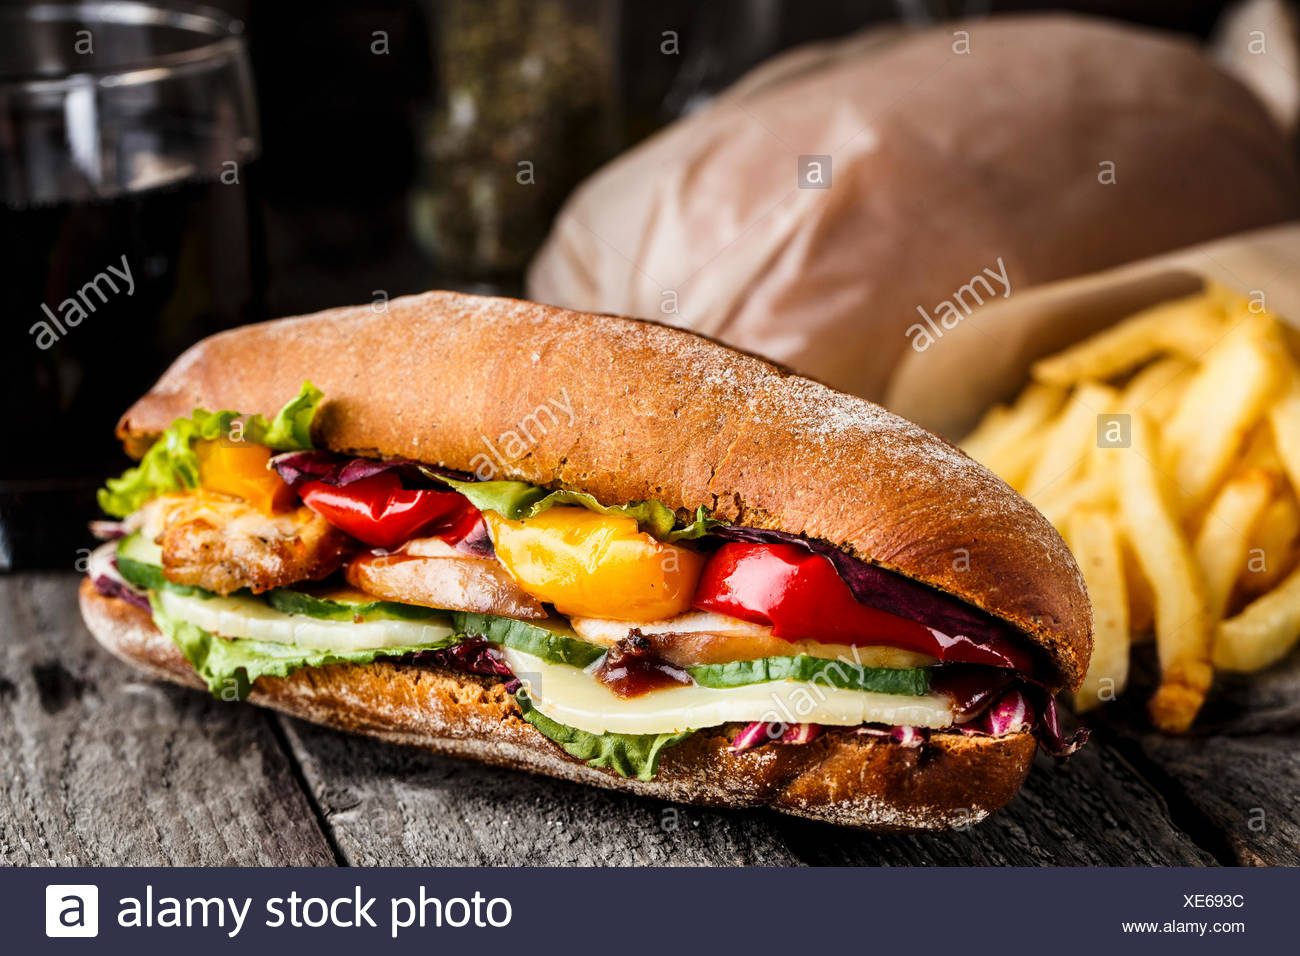 Chicken sandwich, fries and glass of soda on a rustic table - Stock Image